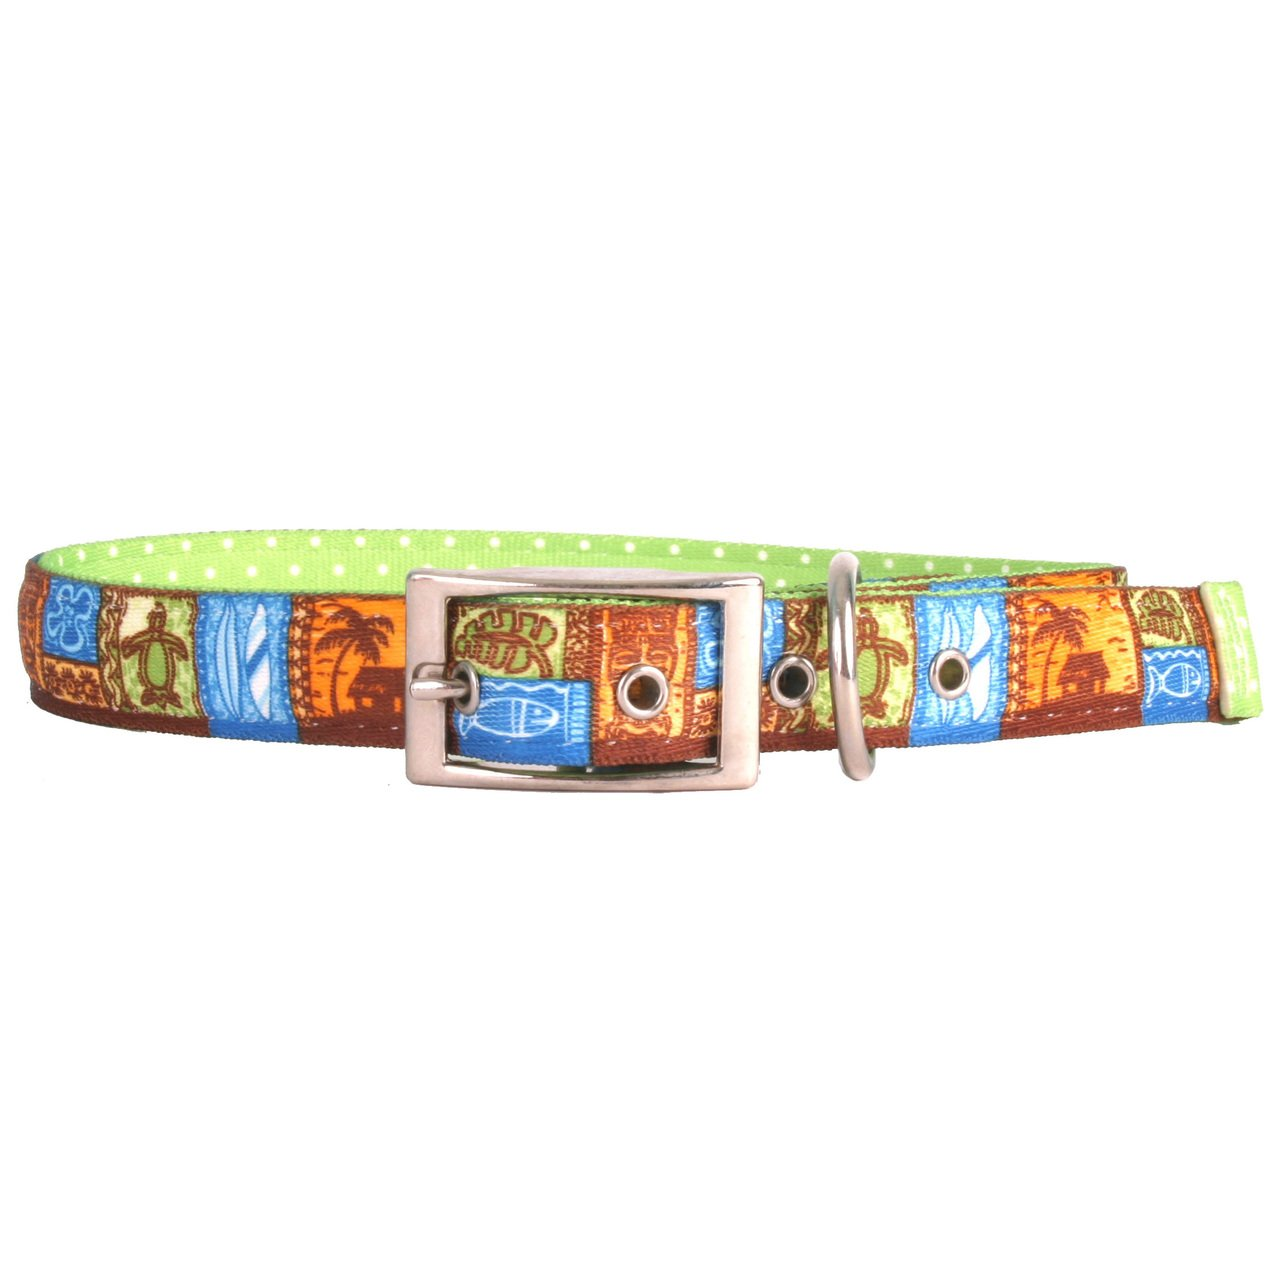 Yellow Dog Design Tiki Print Uptown Dog Collar-Size Medium-1 inch Wide and fits Neck Sizes 15 to 18.5 inches